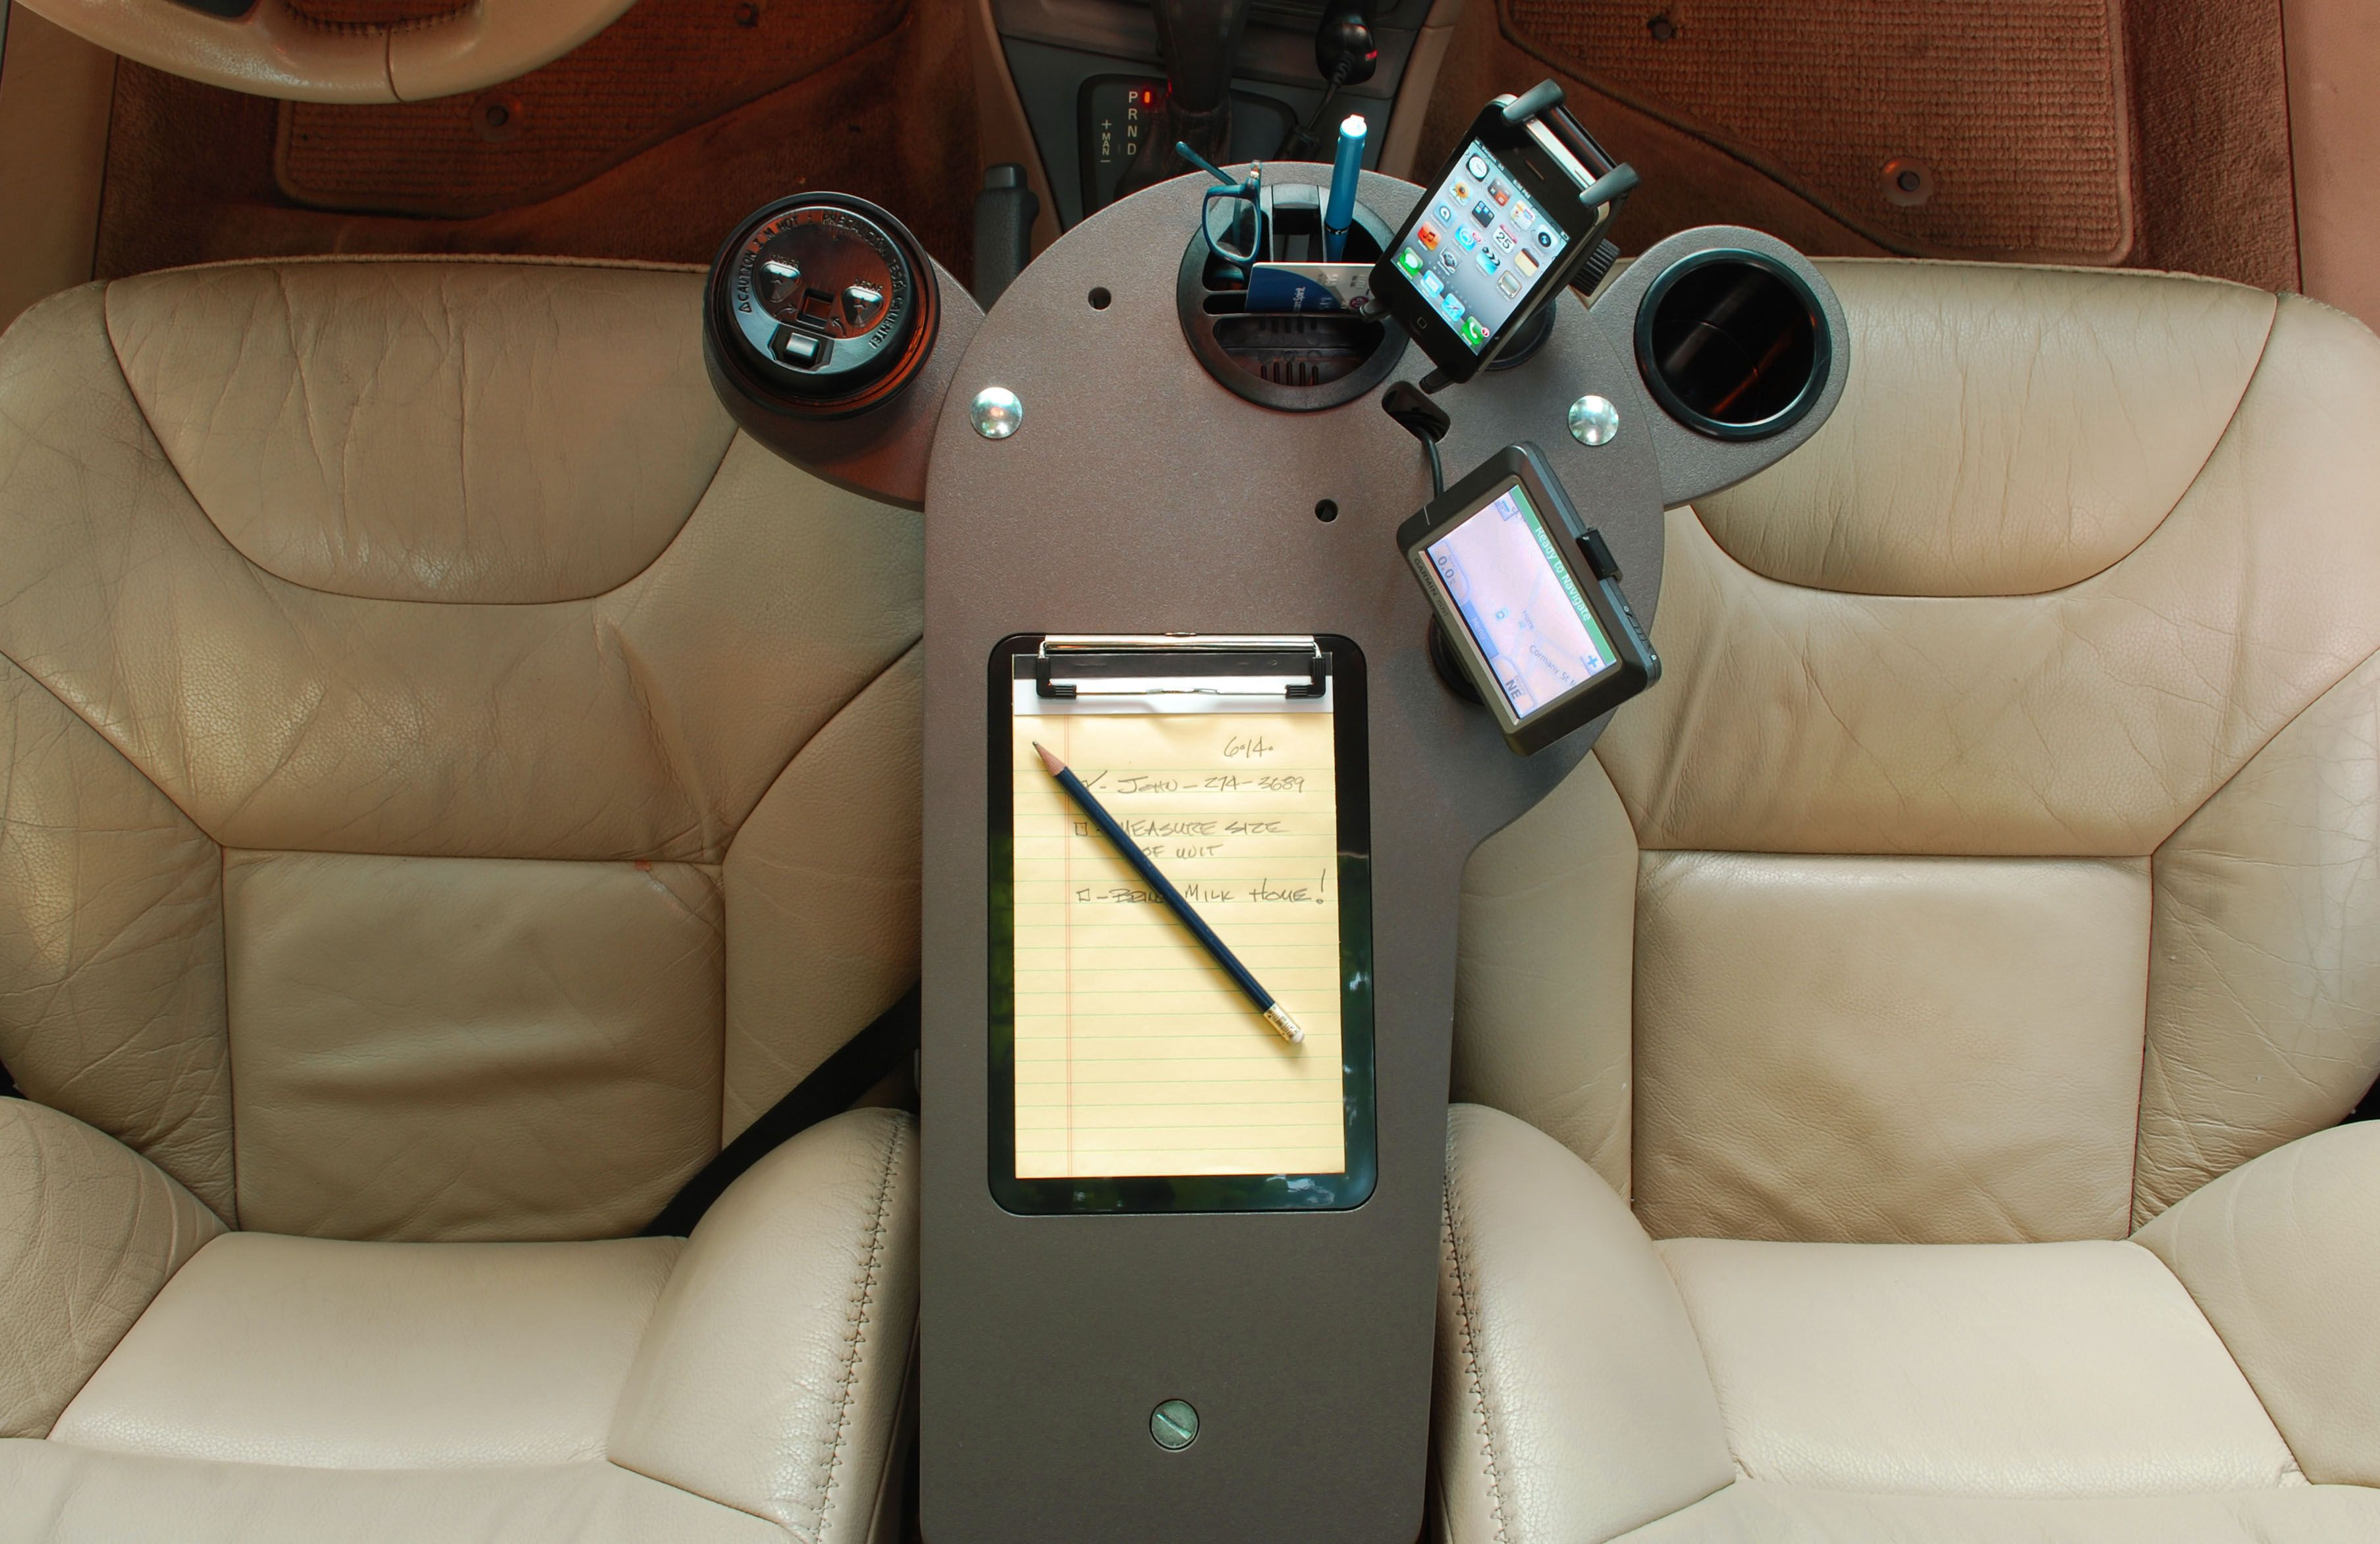 Car Desks Journidock Is A Mobile Office And Portable Desk That Doesnt Take